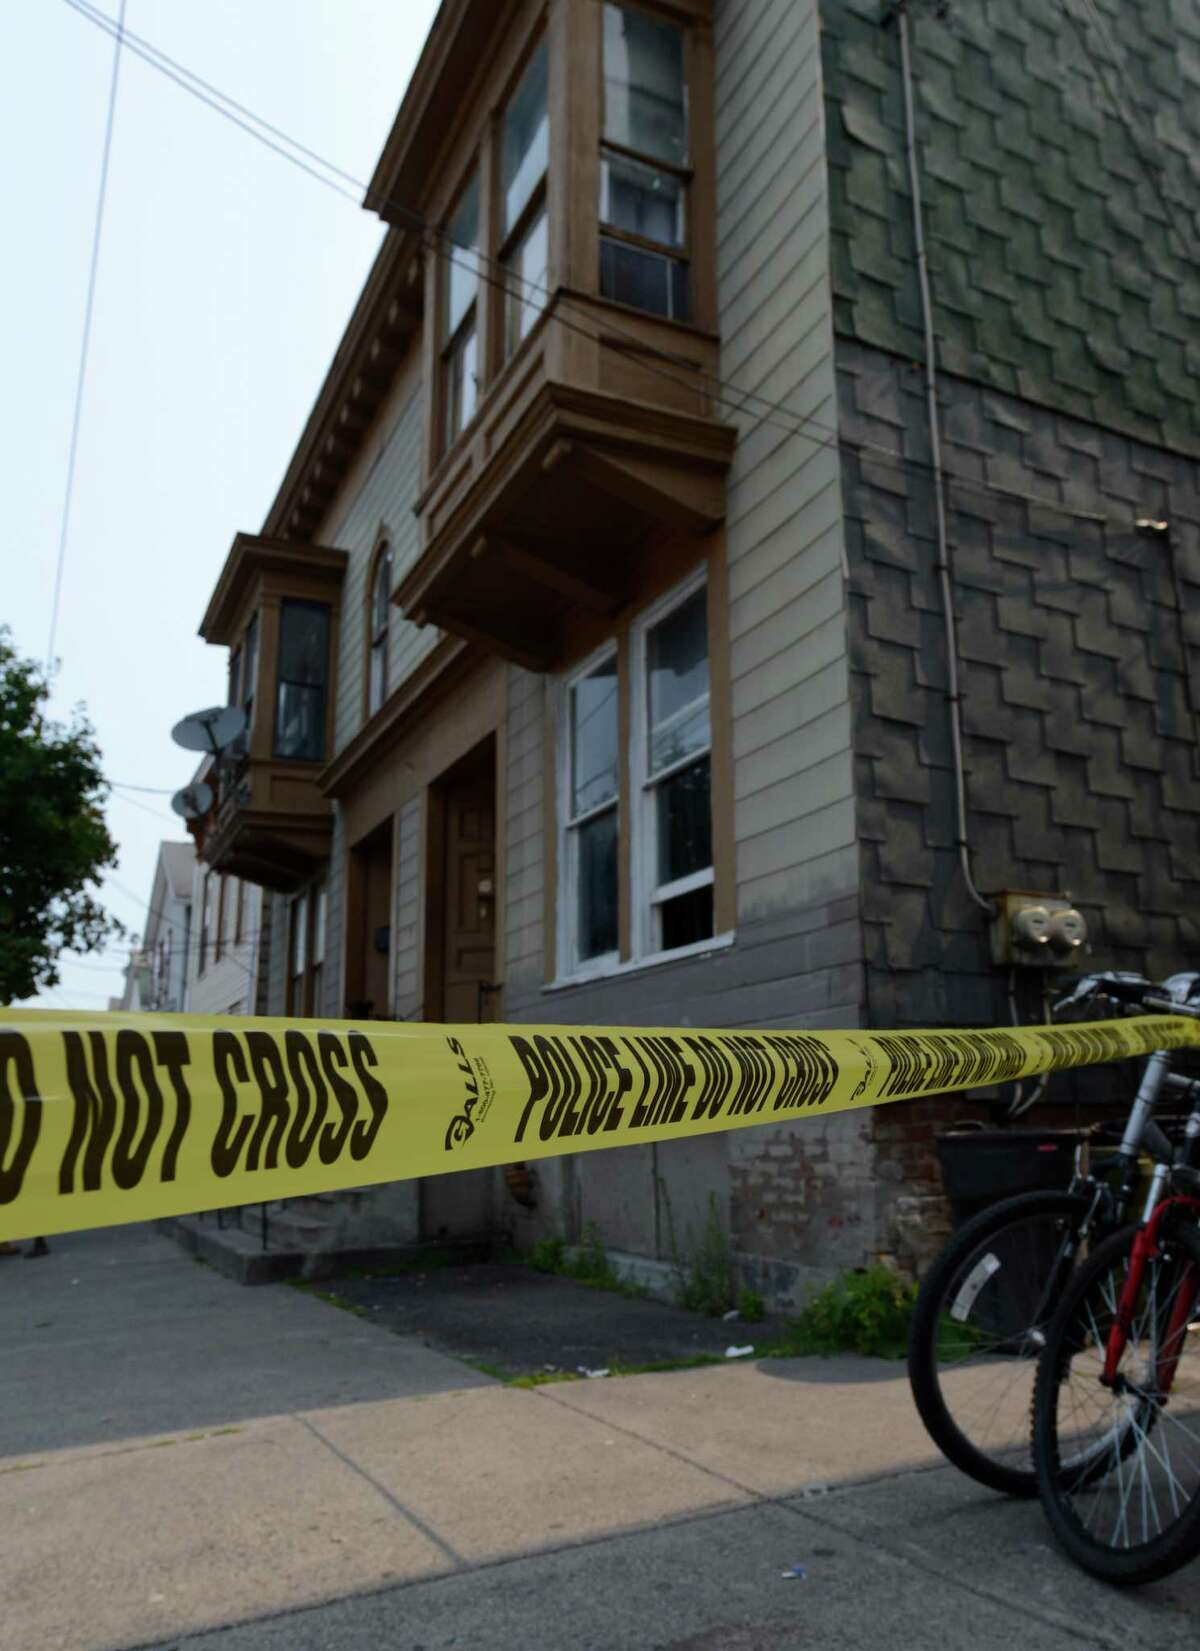 3022 7th Avenue in Troy, N.Y. has been declared a crime scene after a shooting victim was found July 13, 2012. (Skip Dickstein / Times Union)